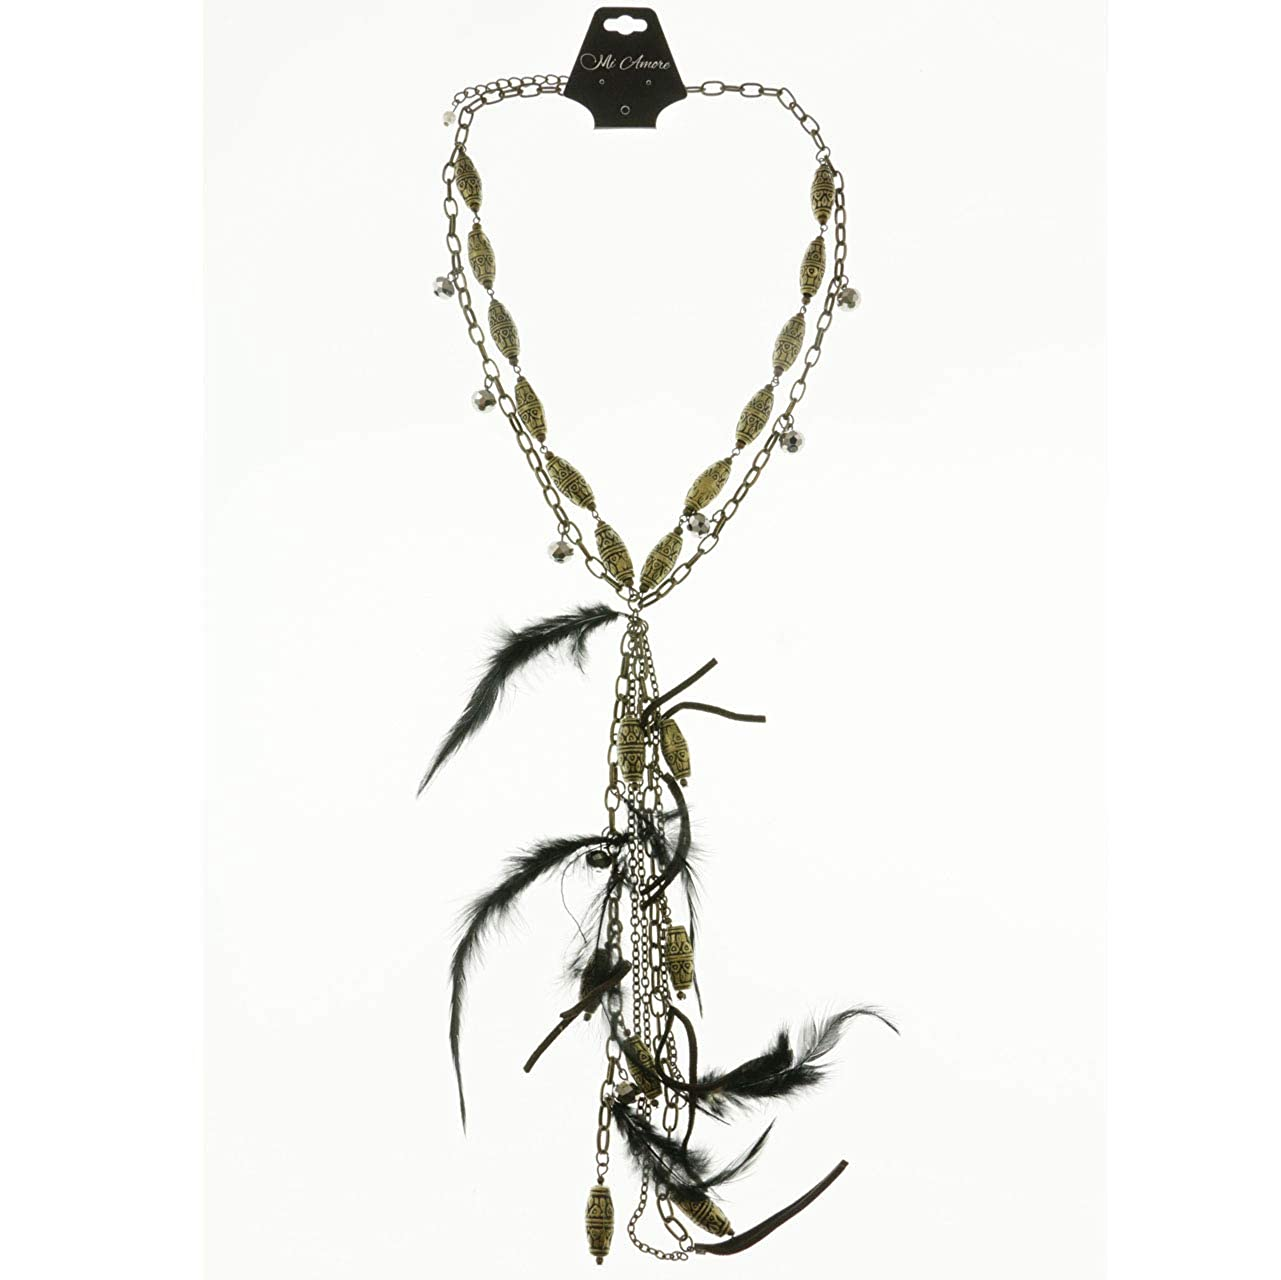 Mi Amore Feathers Tassels Adjustable Statement-Necklace Multicolor /& Gold-Tone